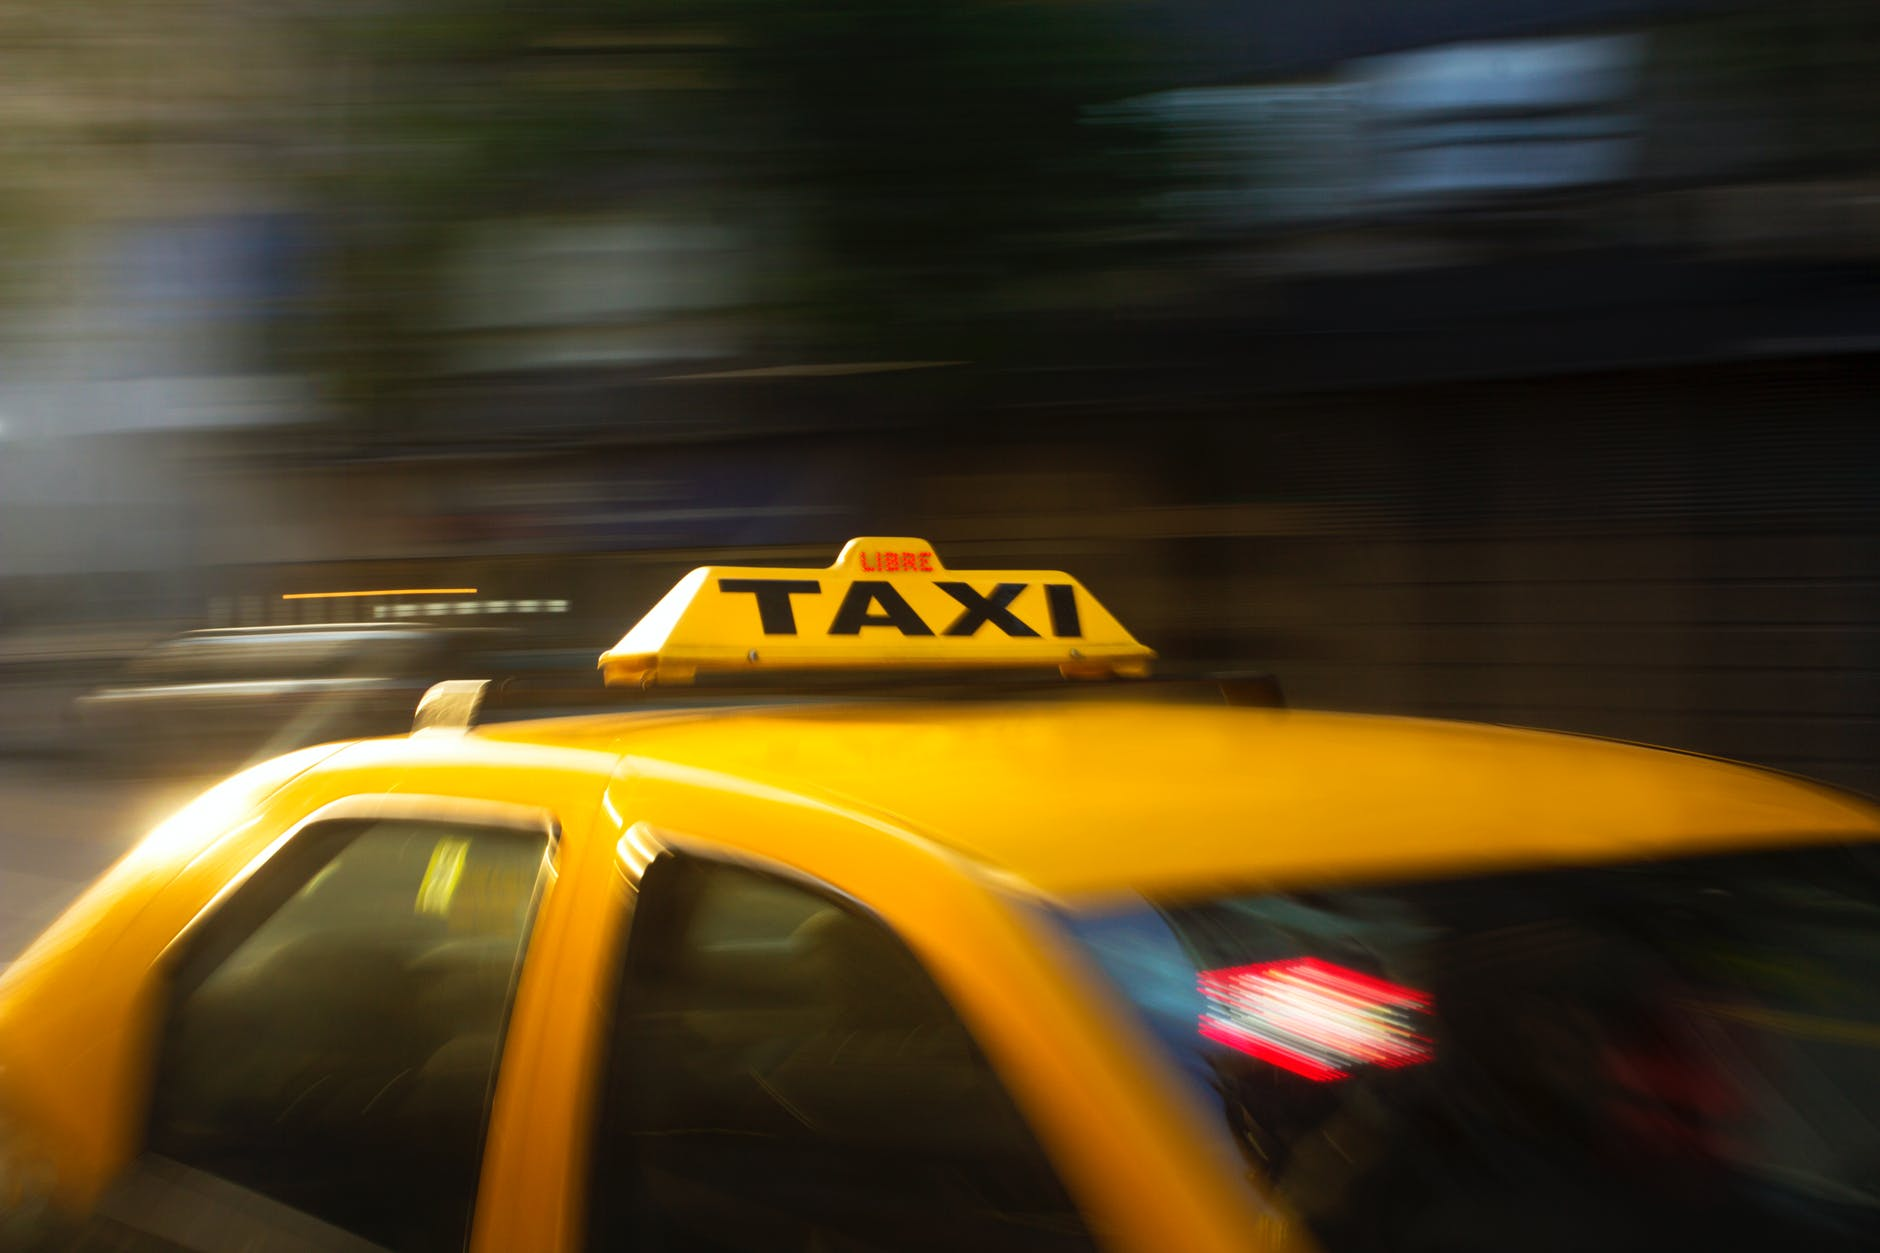 Airport taxi